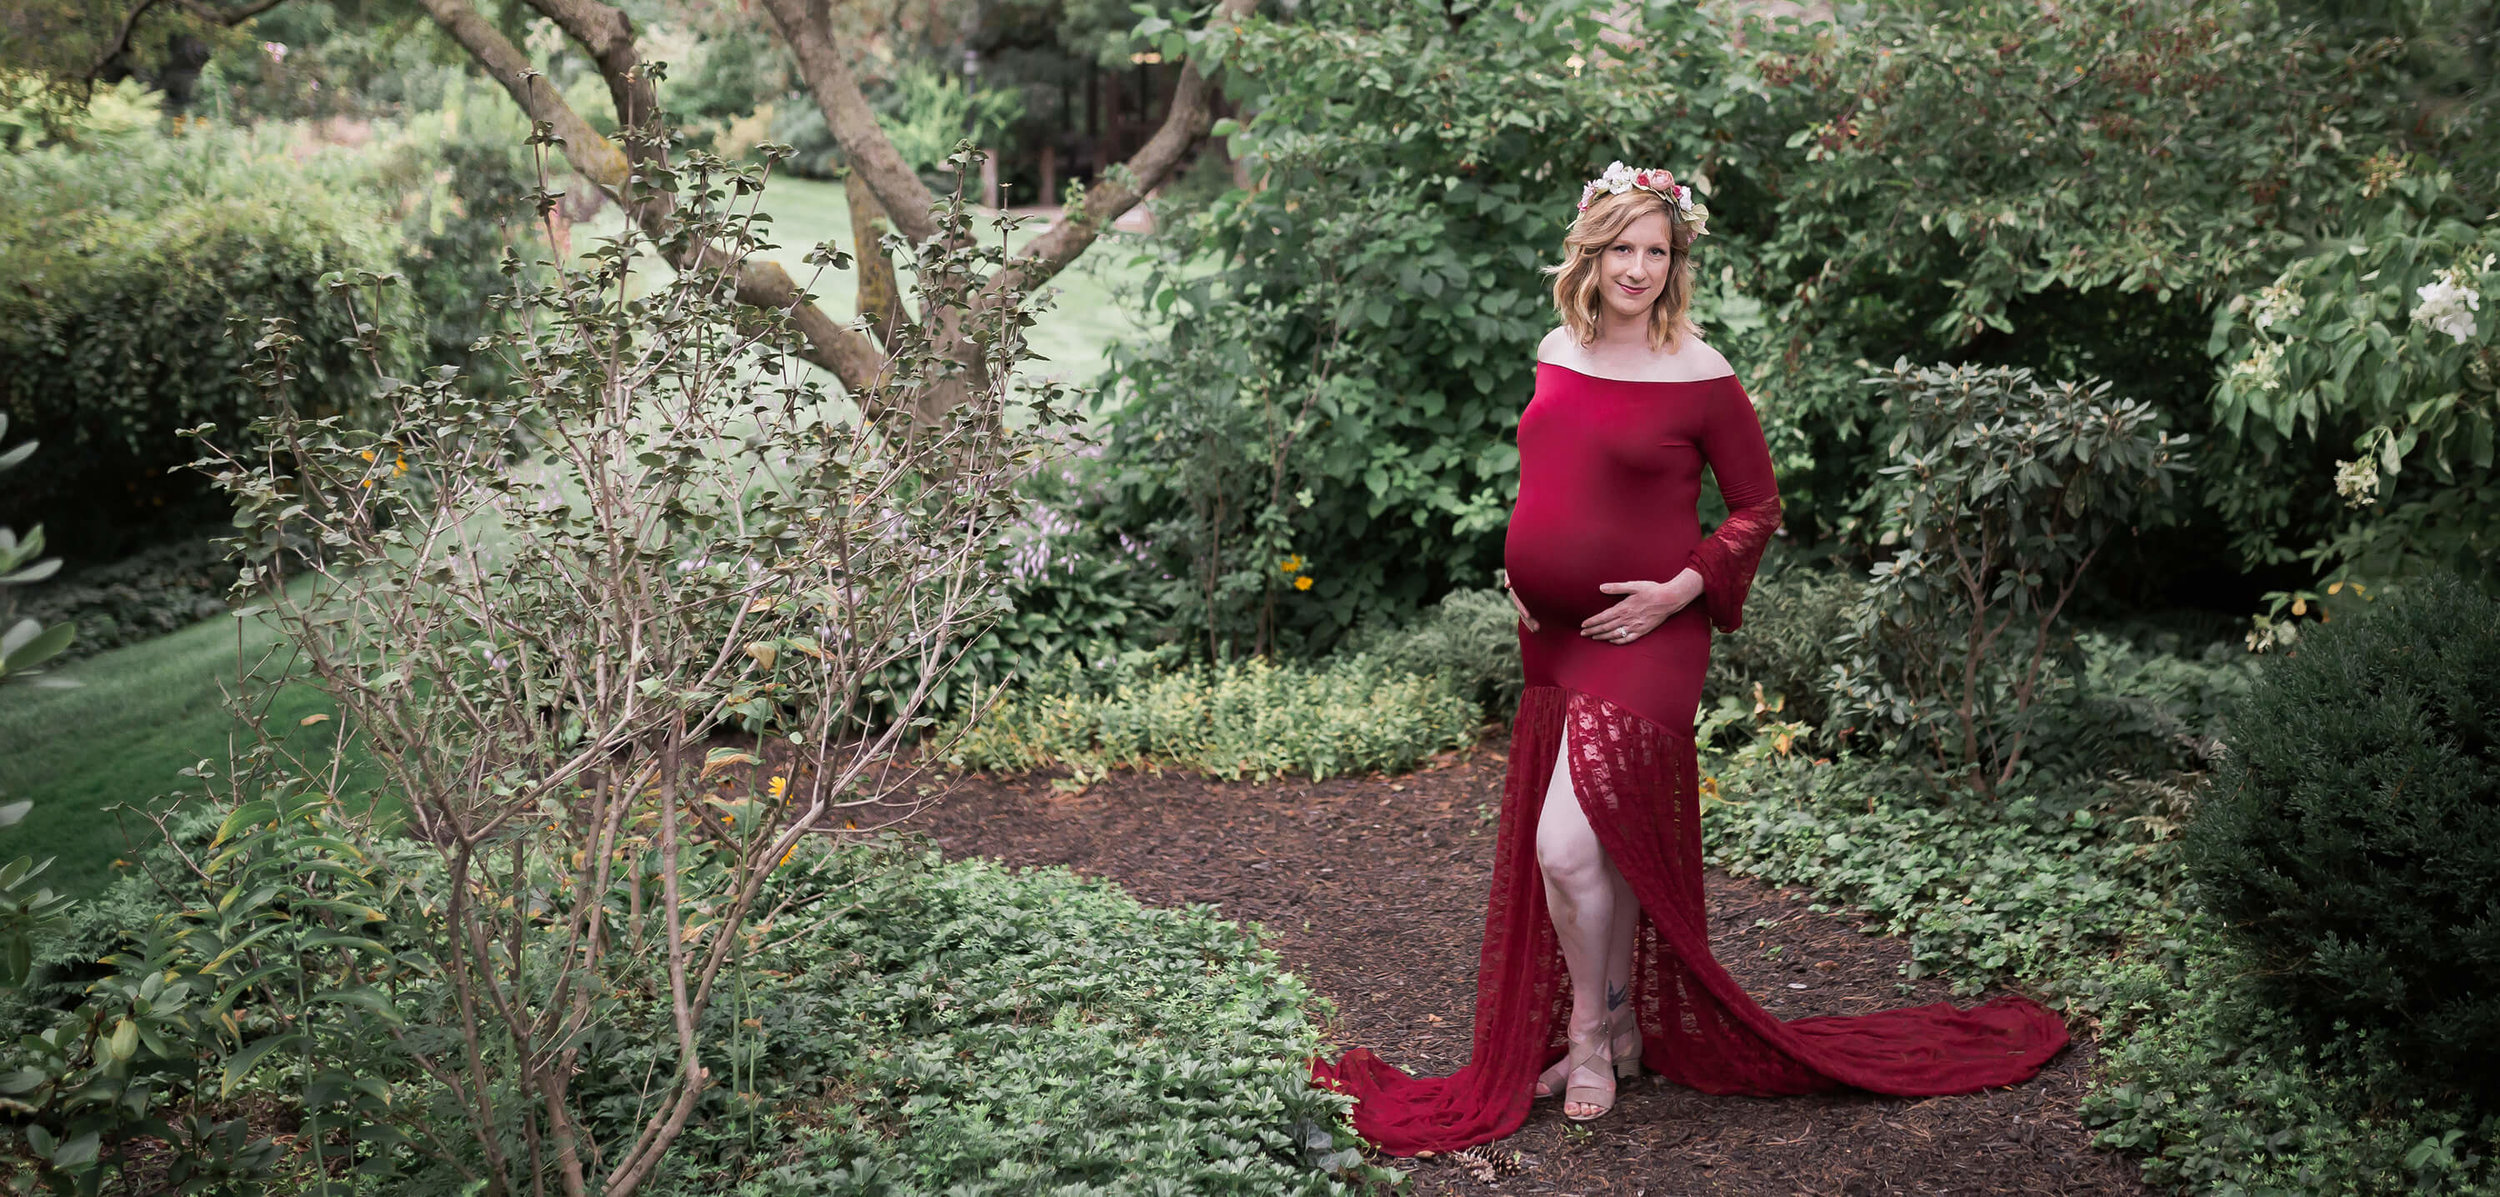 Sweet Snaps Photography - Northwest Indiana Maternity Photography.jpg